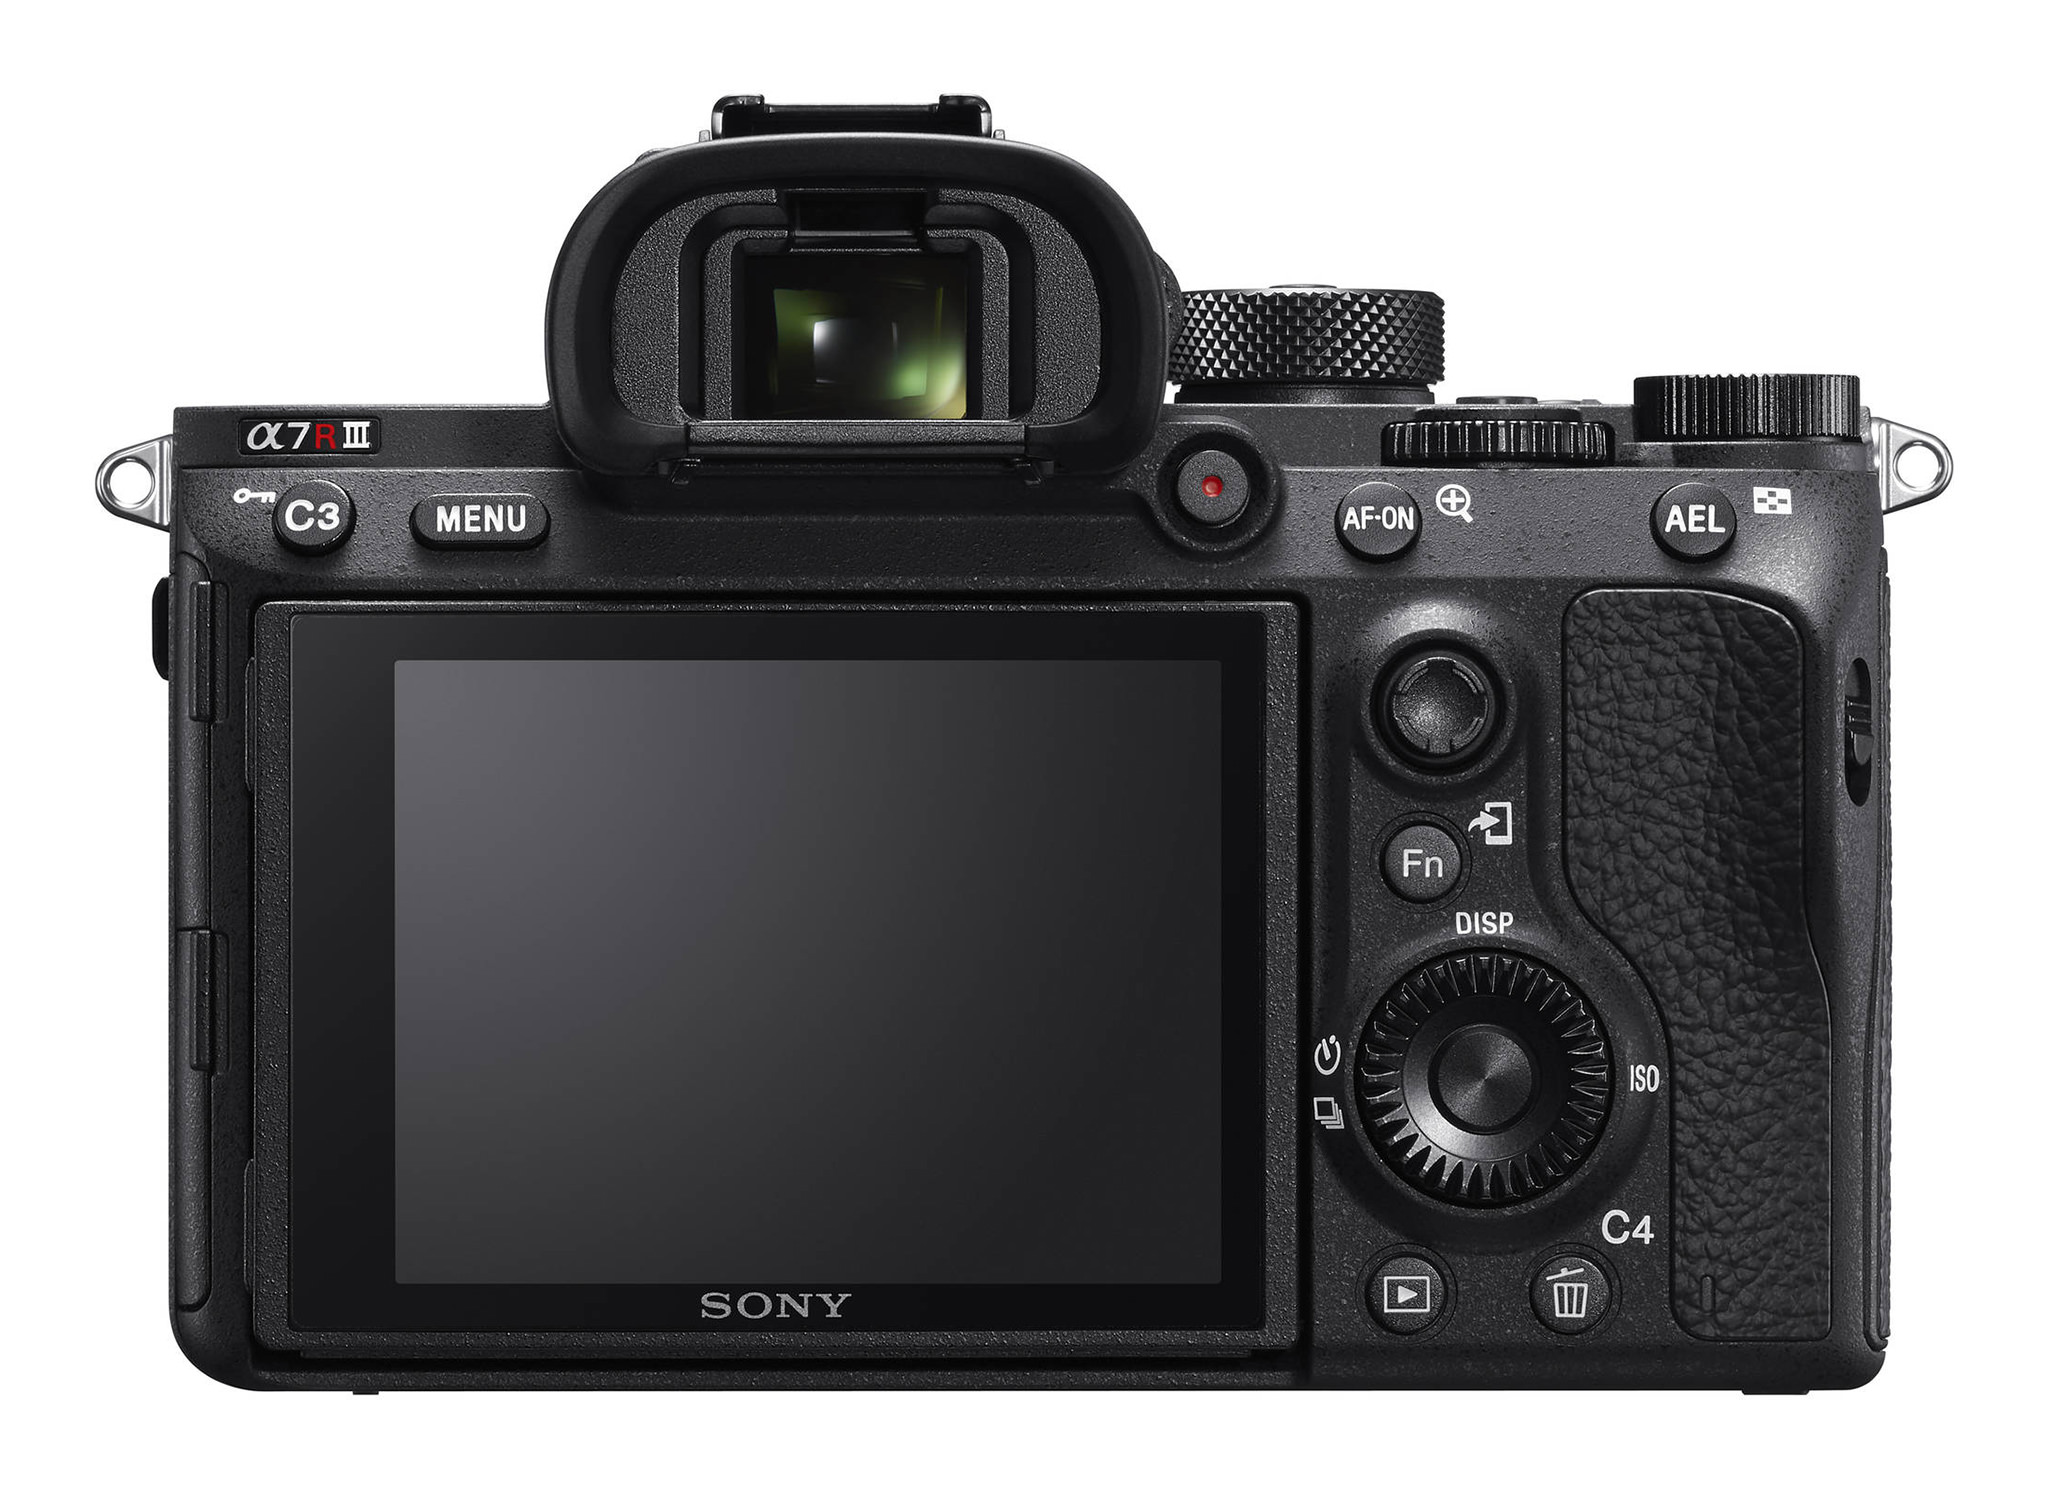 10 Issues Sony Needs to Address In Its Mirrorless Cameras